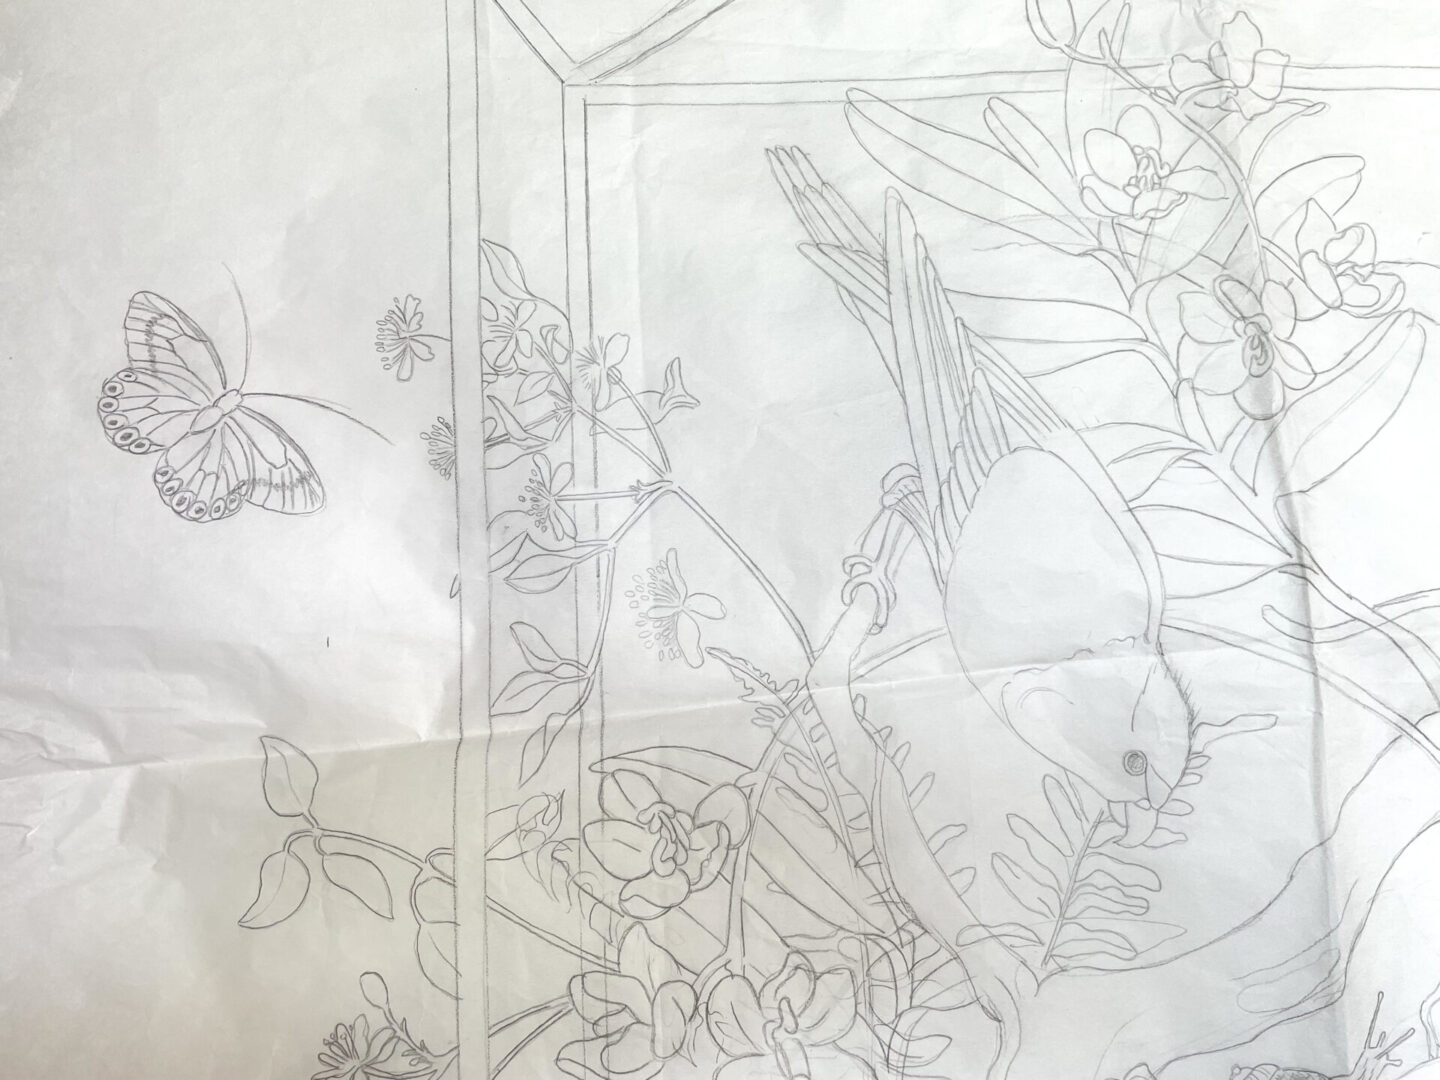 chinoiserie-bird-drawing-by-artist-allison-cosmos